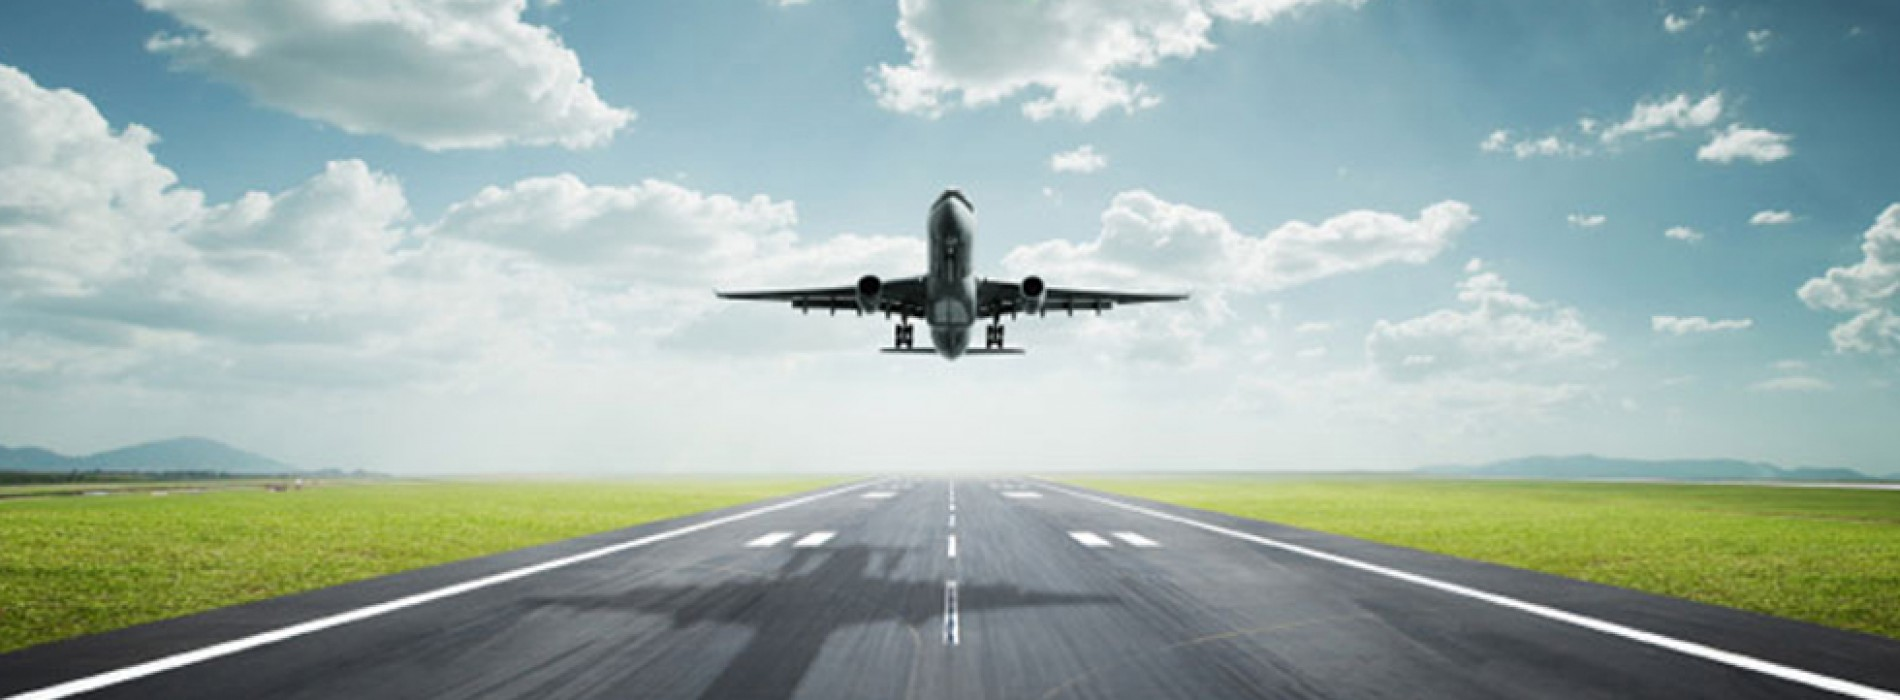 India becomes third largest aviation market in domestic traffic